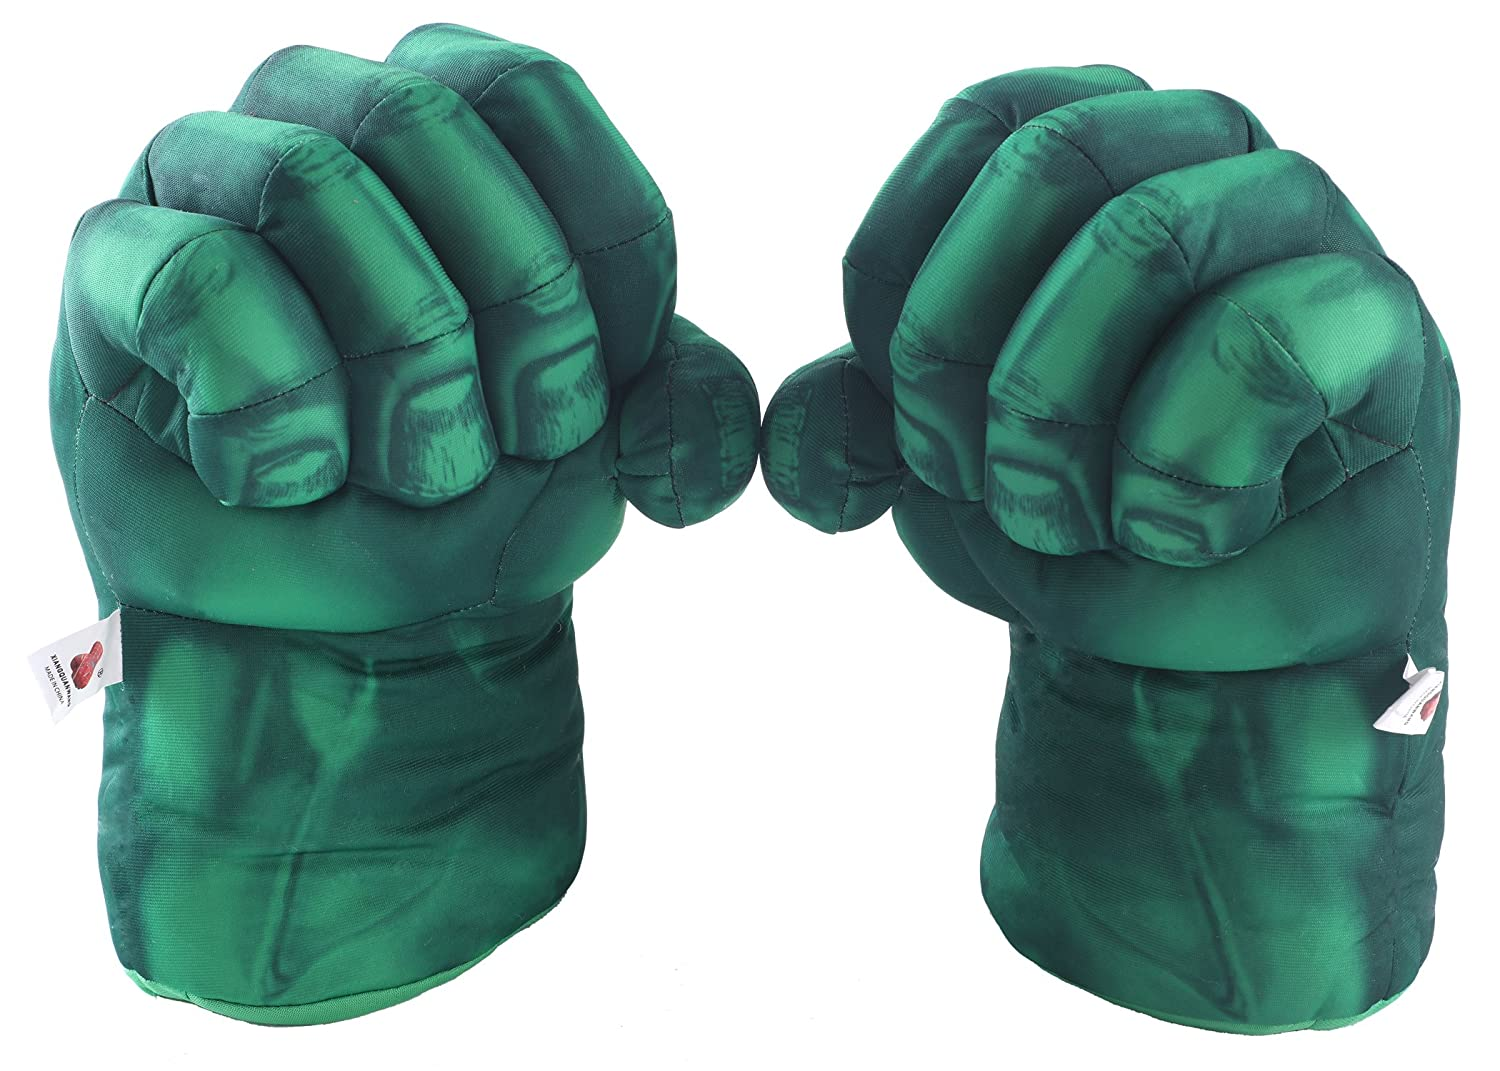 Amazon.com: Fairzoo Hulk Smash Hands Fists Big Soft Plush Gloves ...